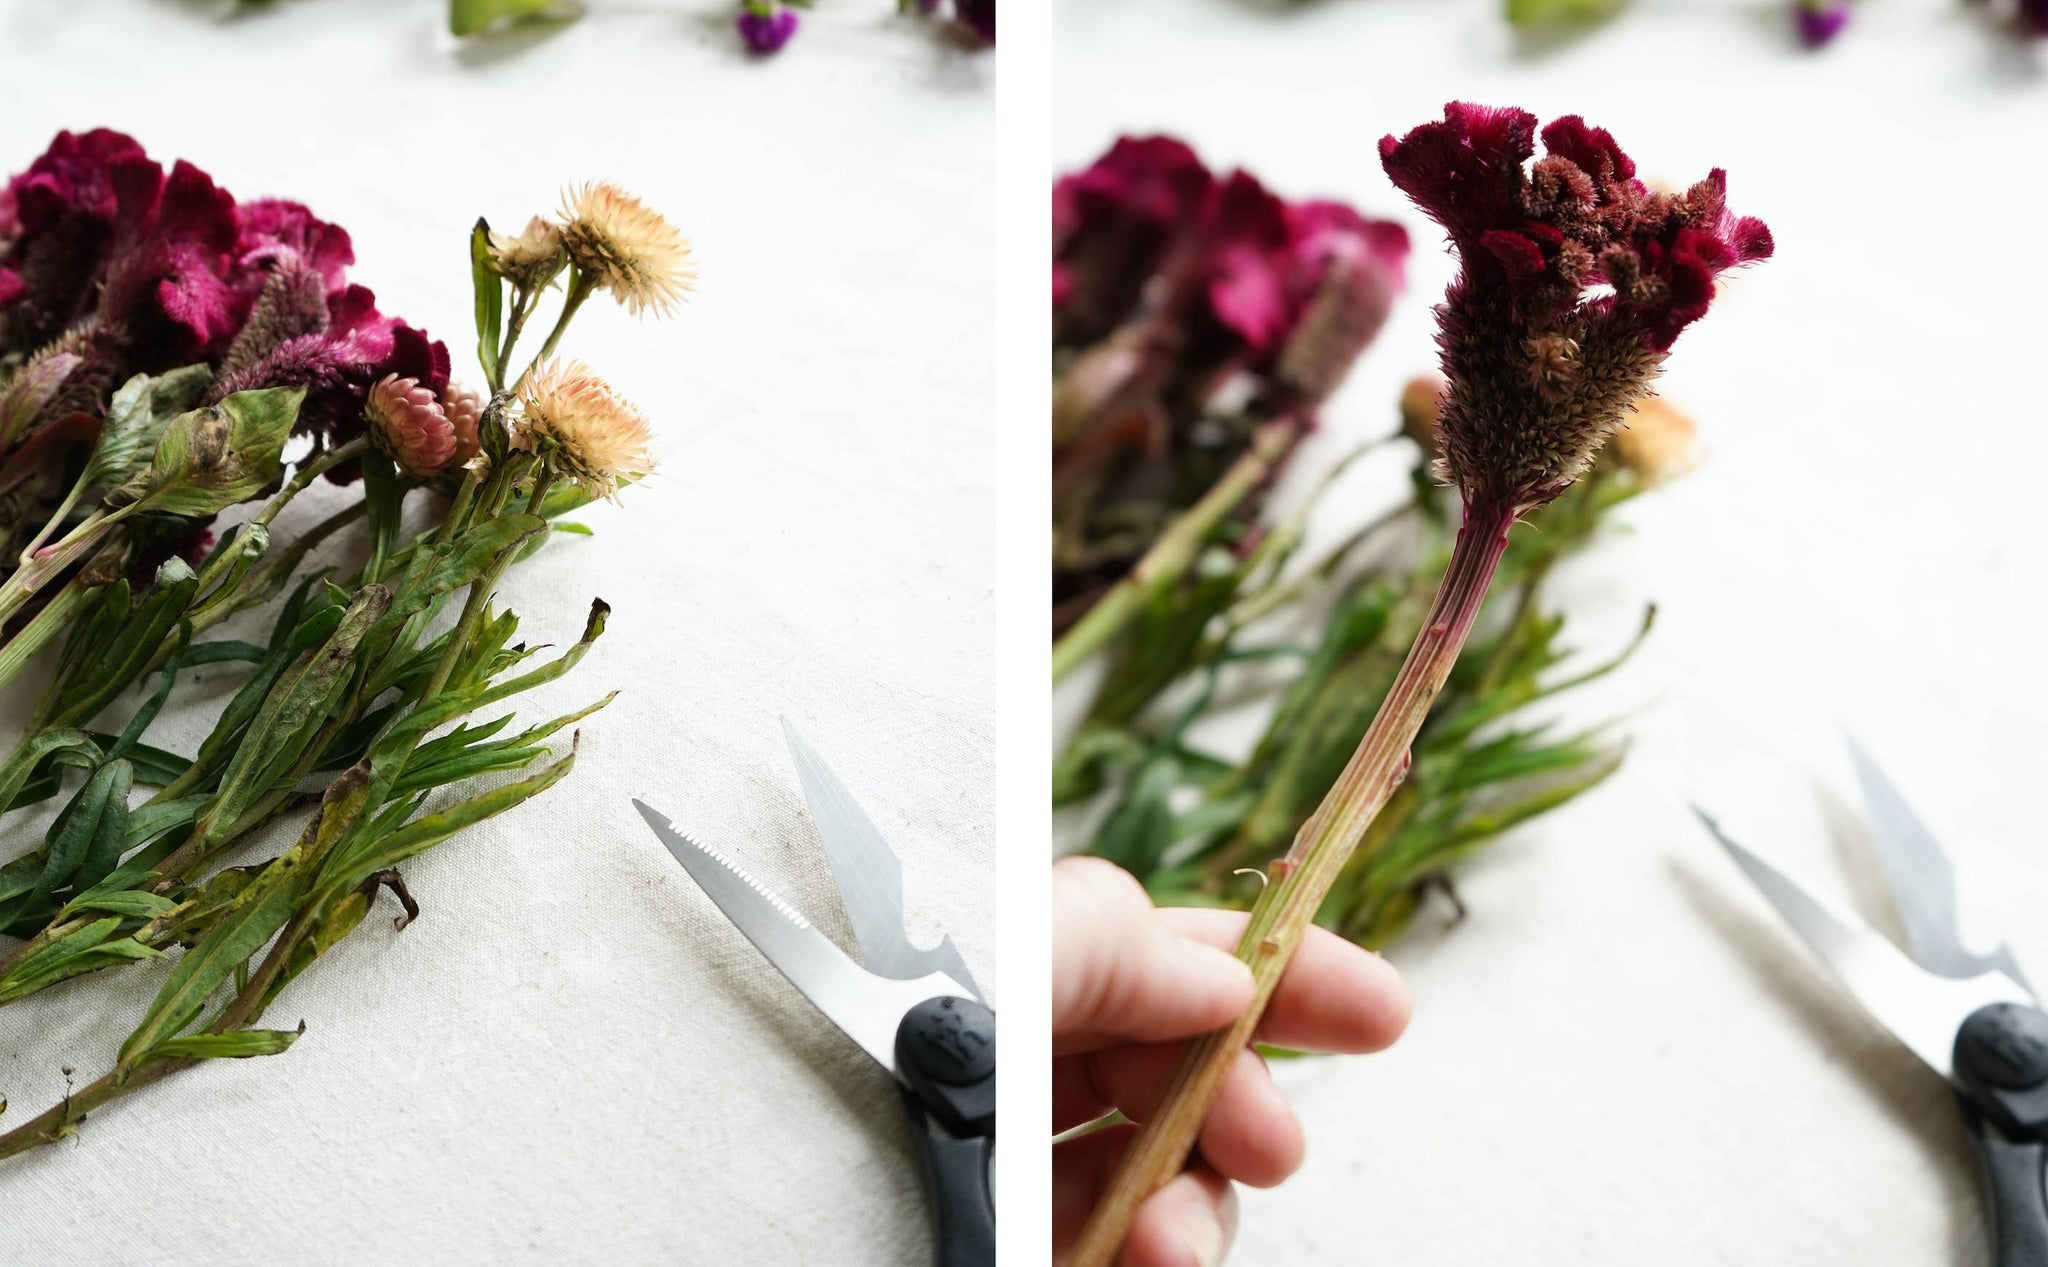 Taking off the extra leaf on a fresh flower bouquet in order to prepare them to dry